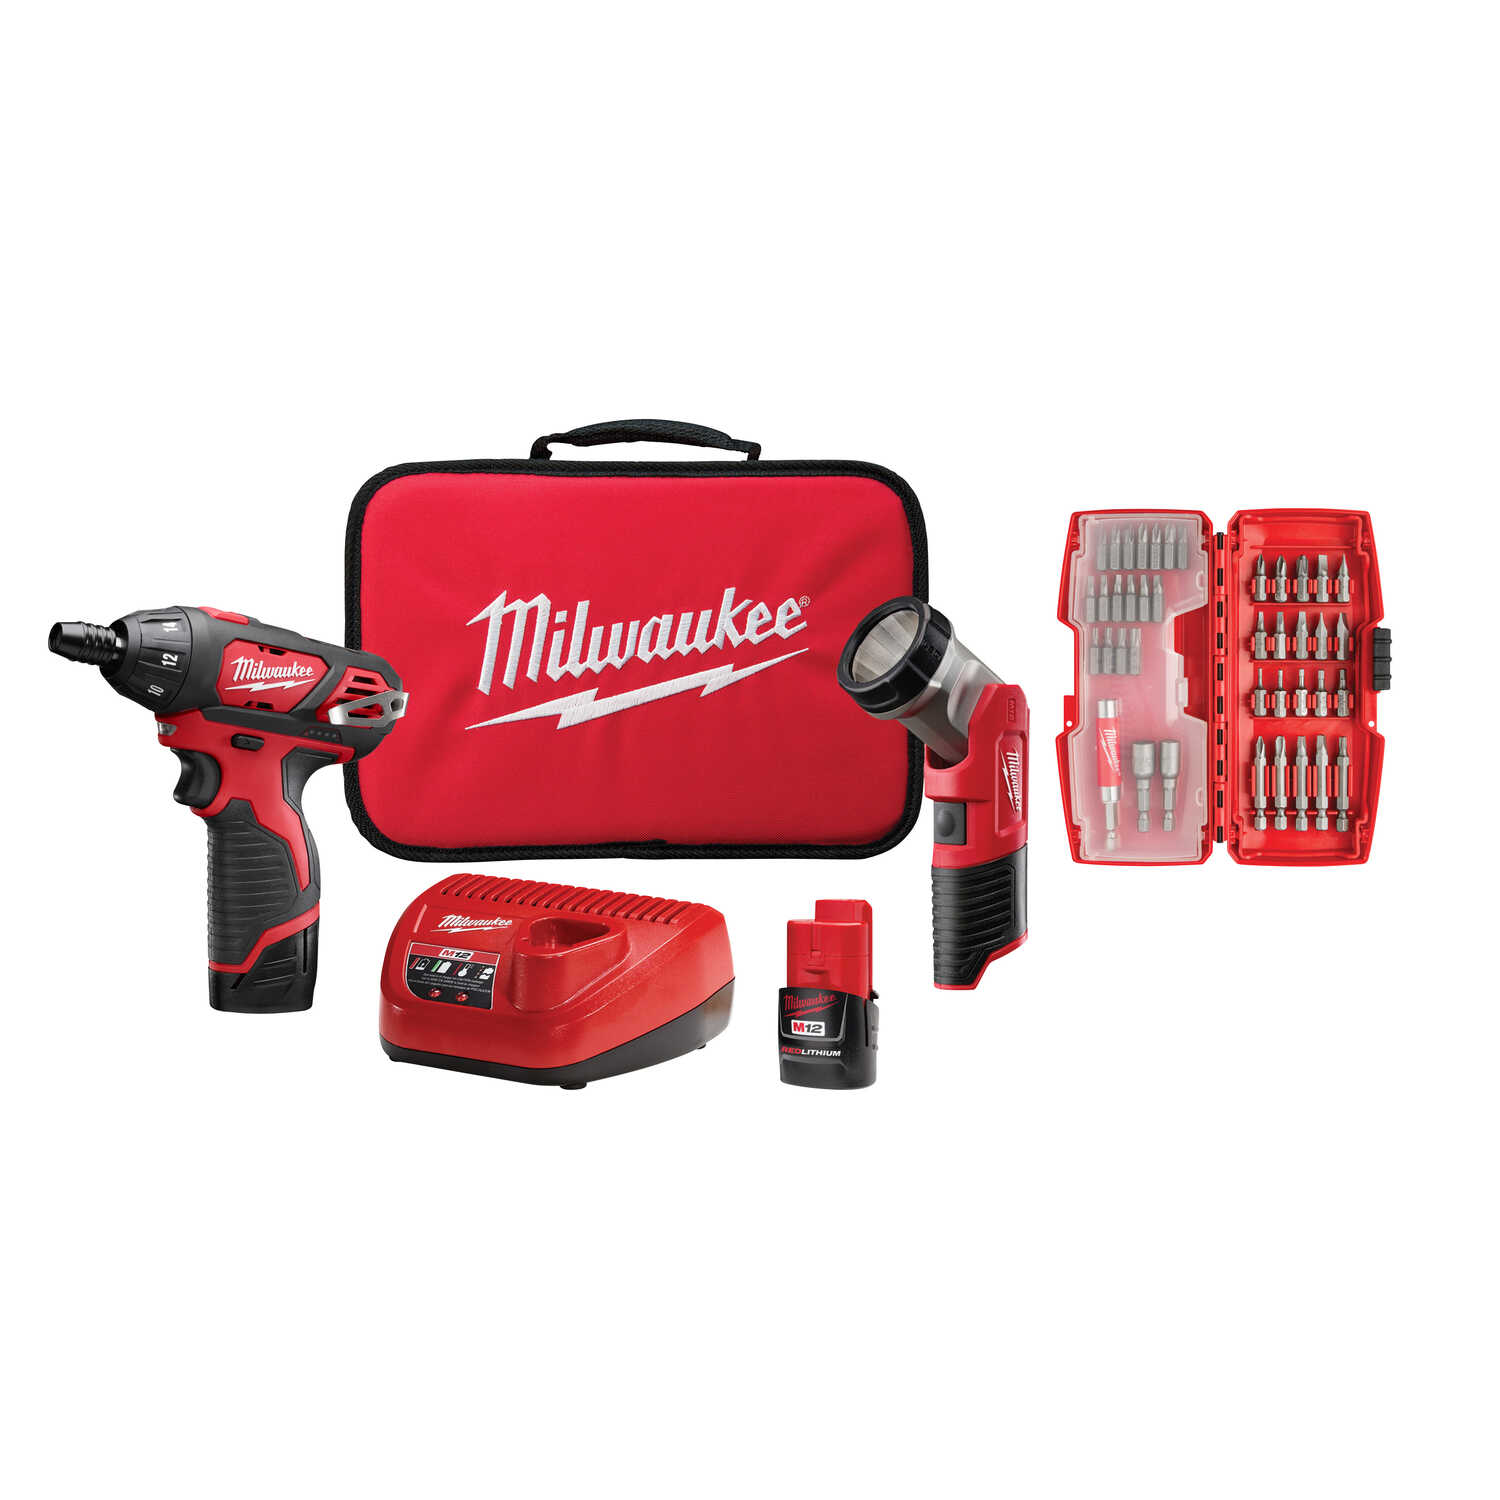 Milwaukee  M12  12 volt Brushed  Cordless Compact Drill/Driver  Kit  1/4 in. Quick-Release  500 rpm